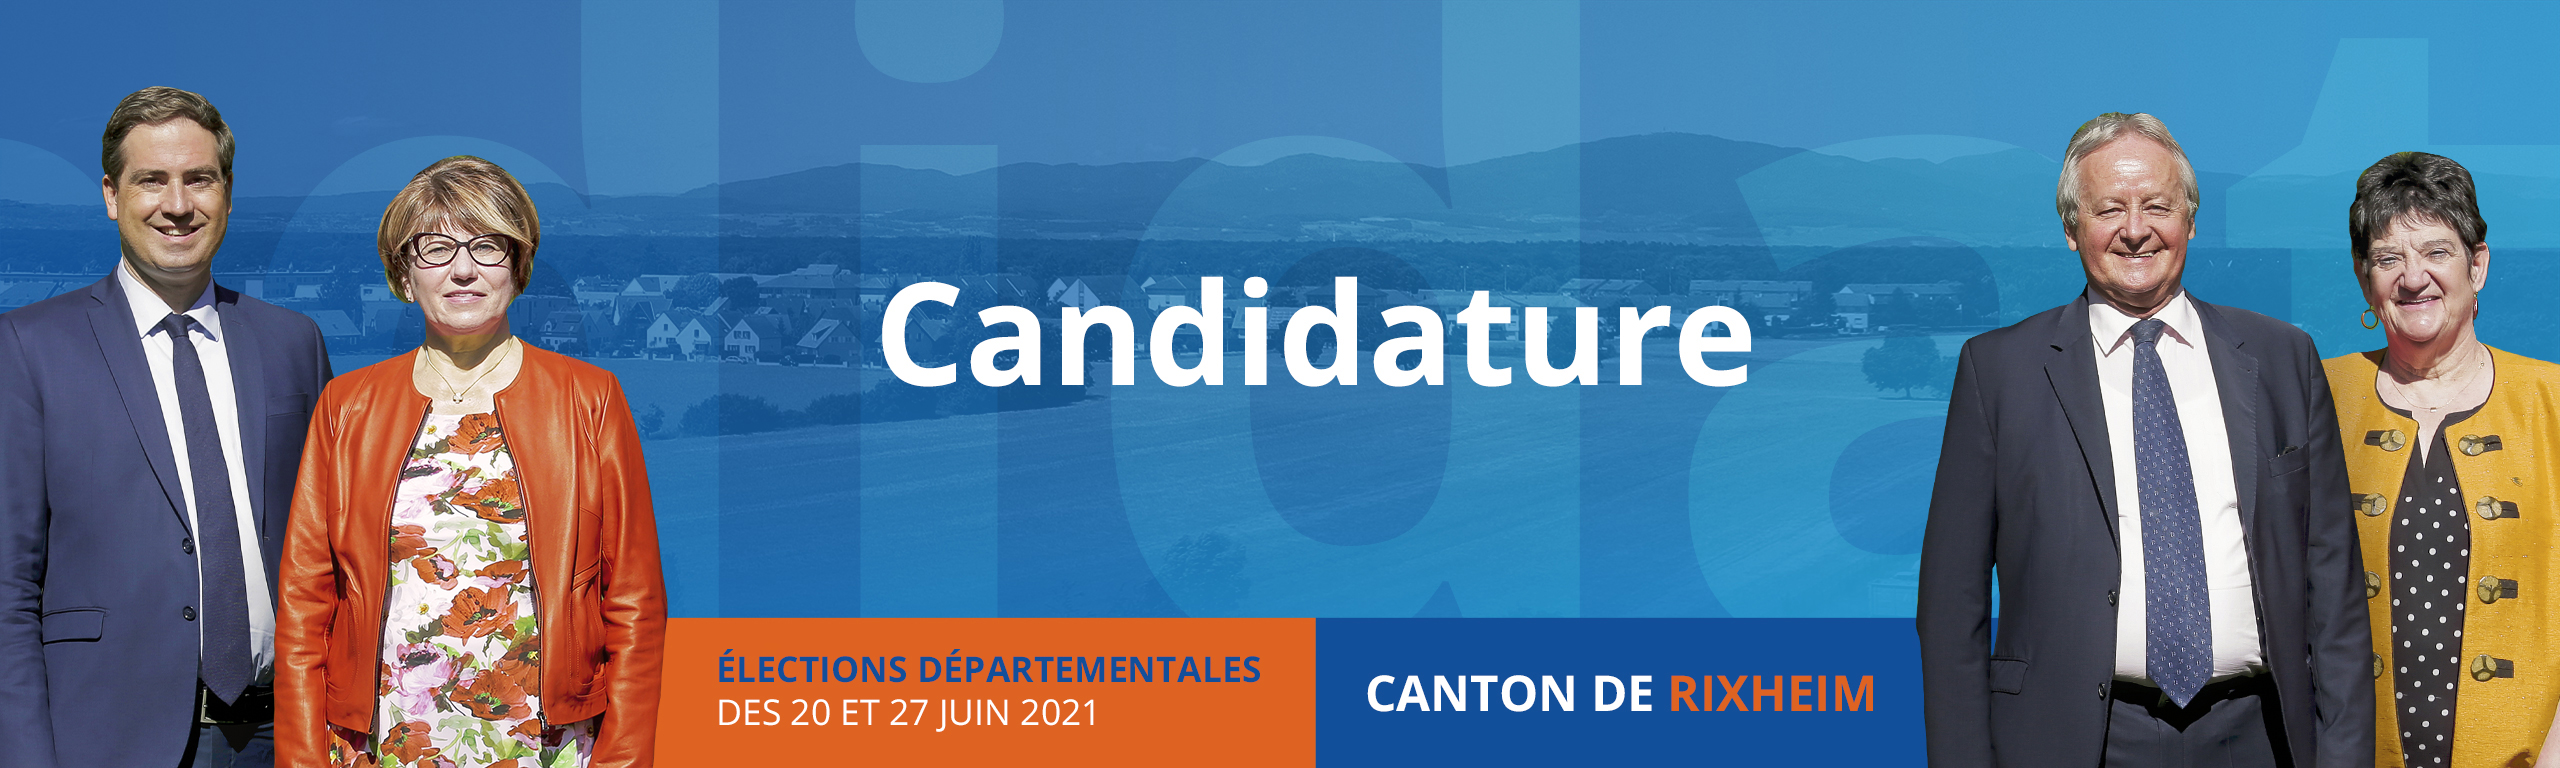 candidature_2560x768